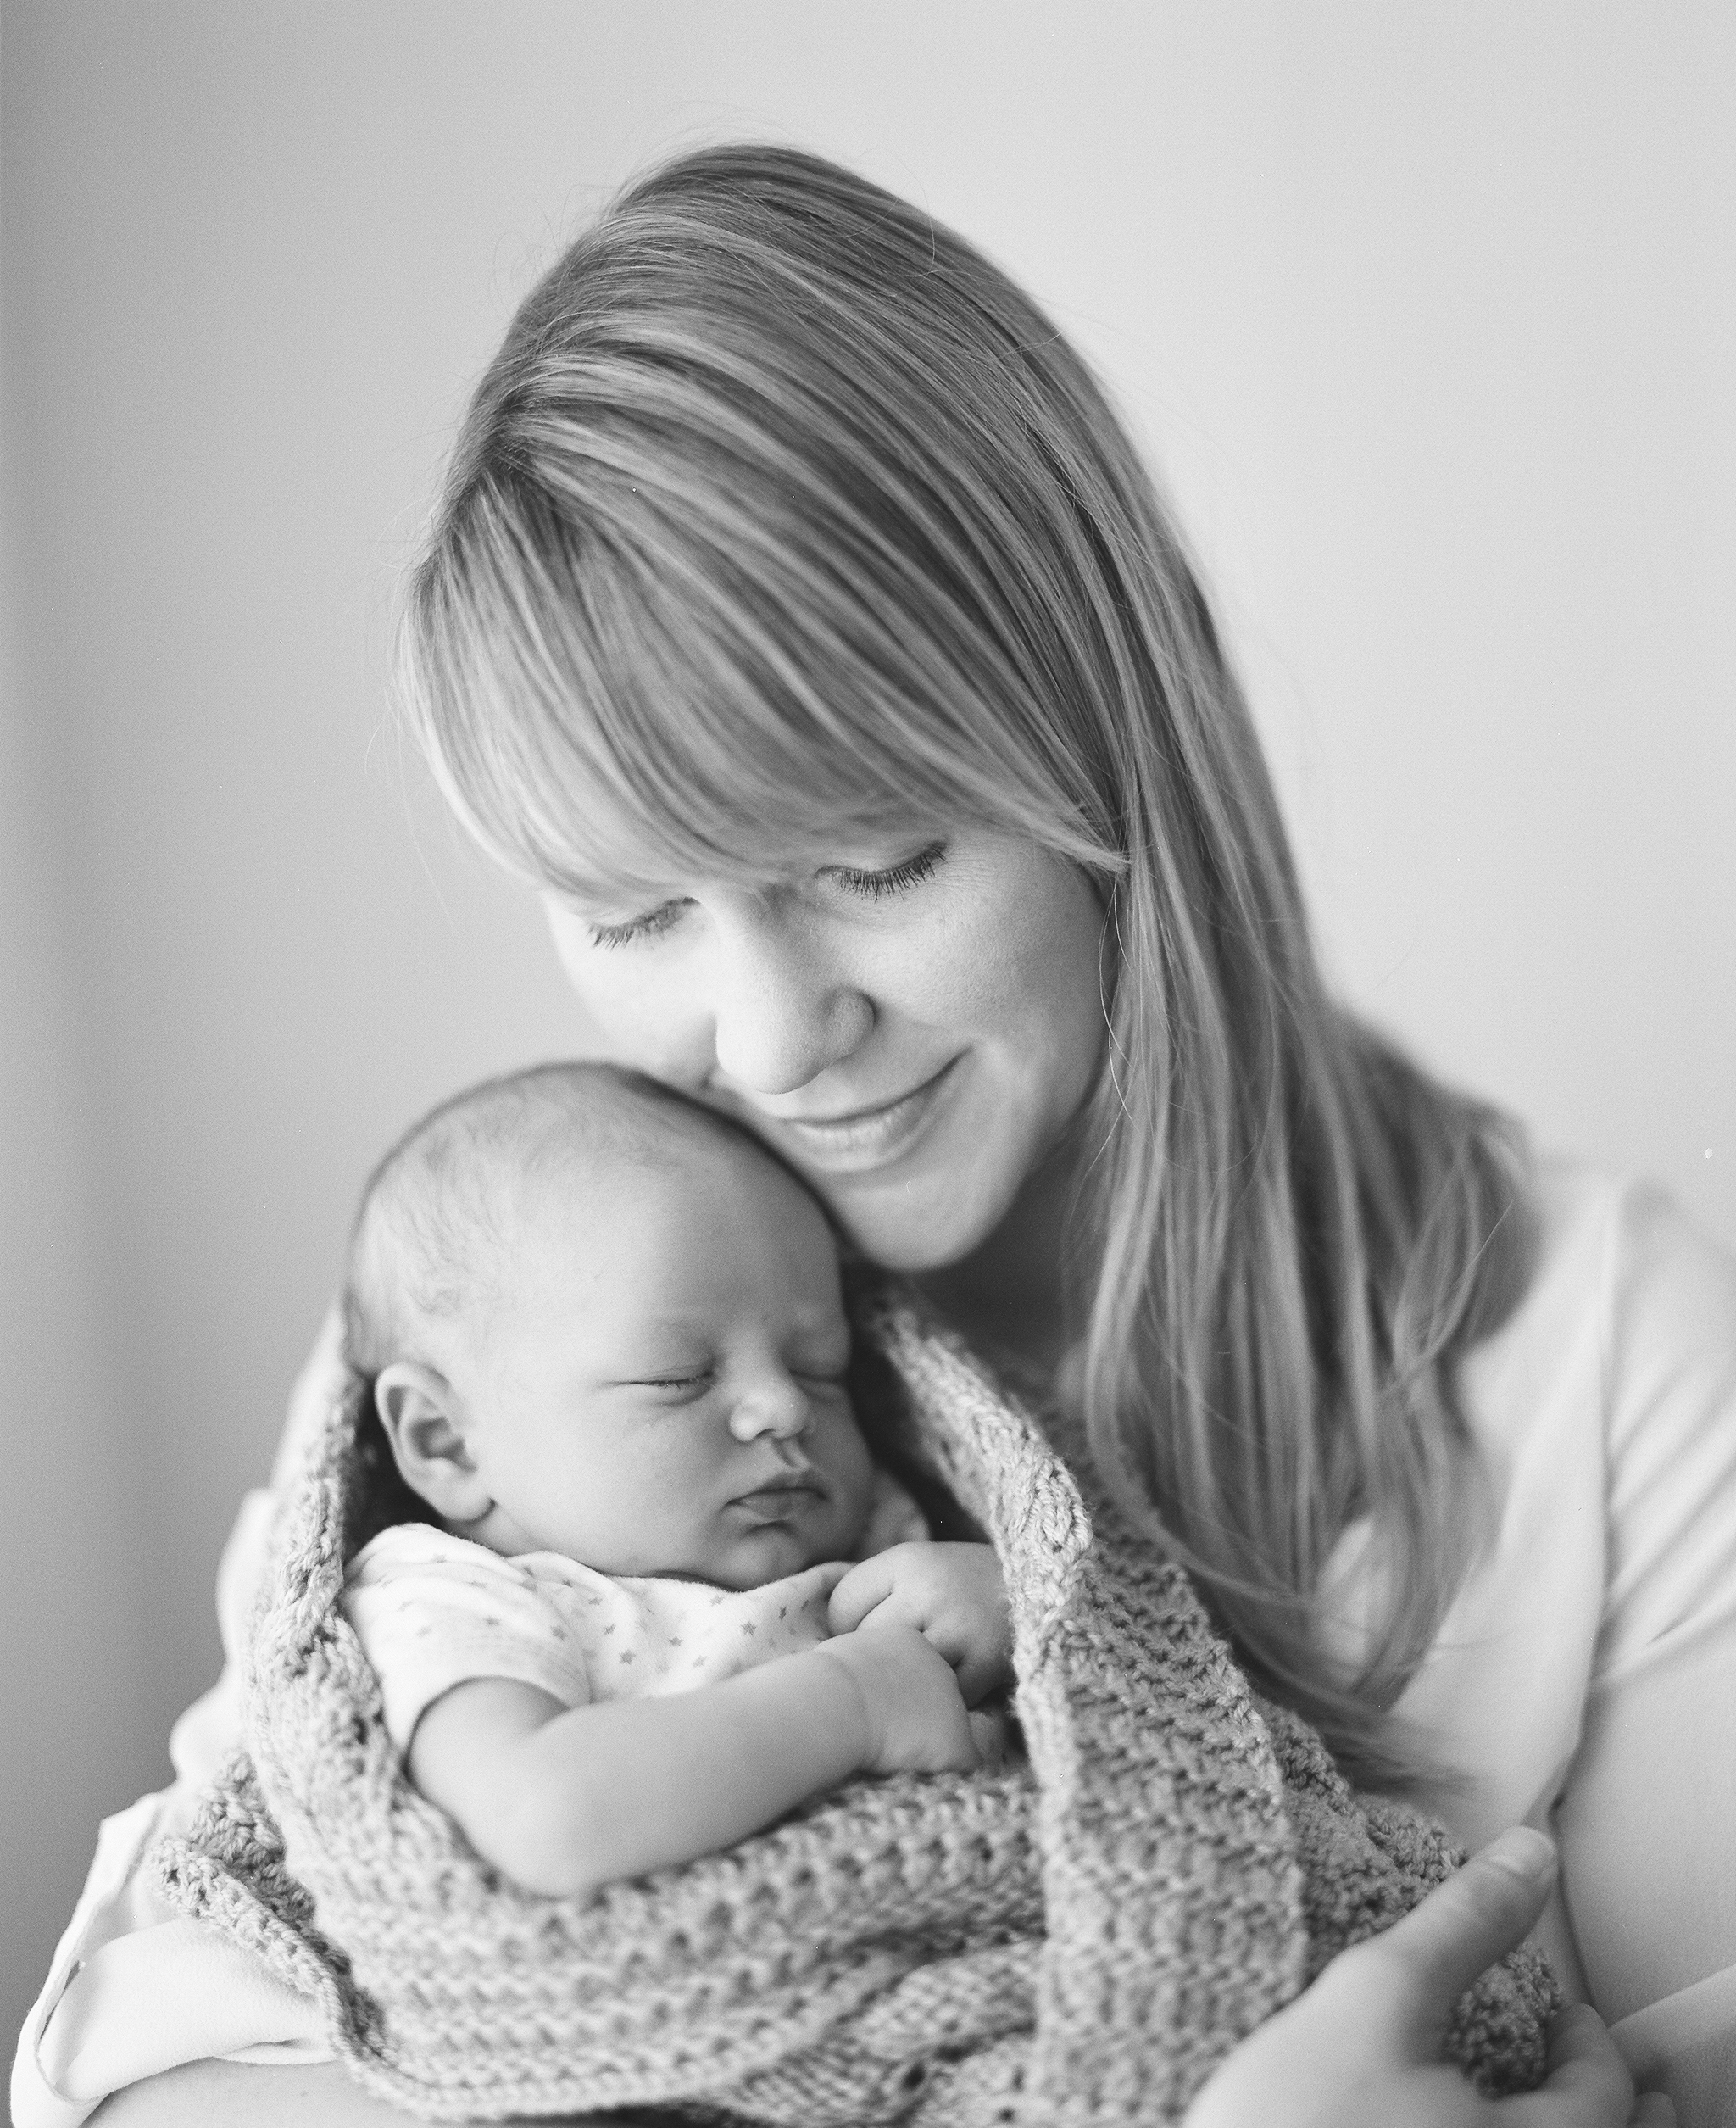 Newborn Photography Seattle, Sandra Coan, newborns on film